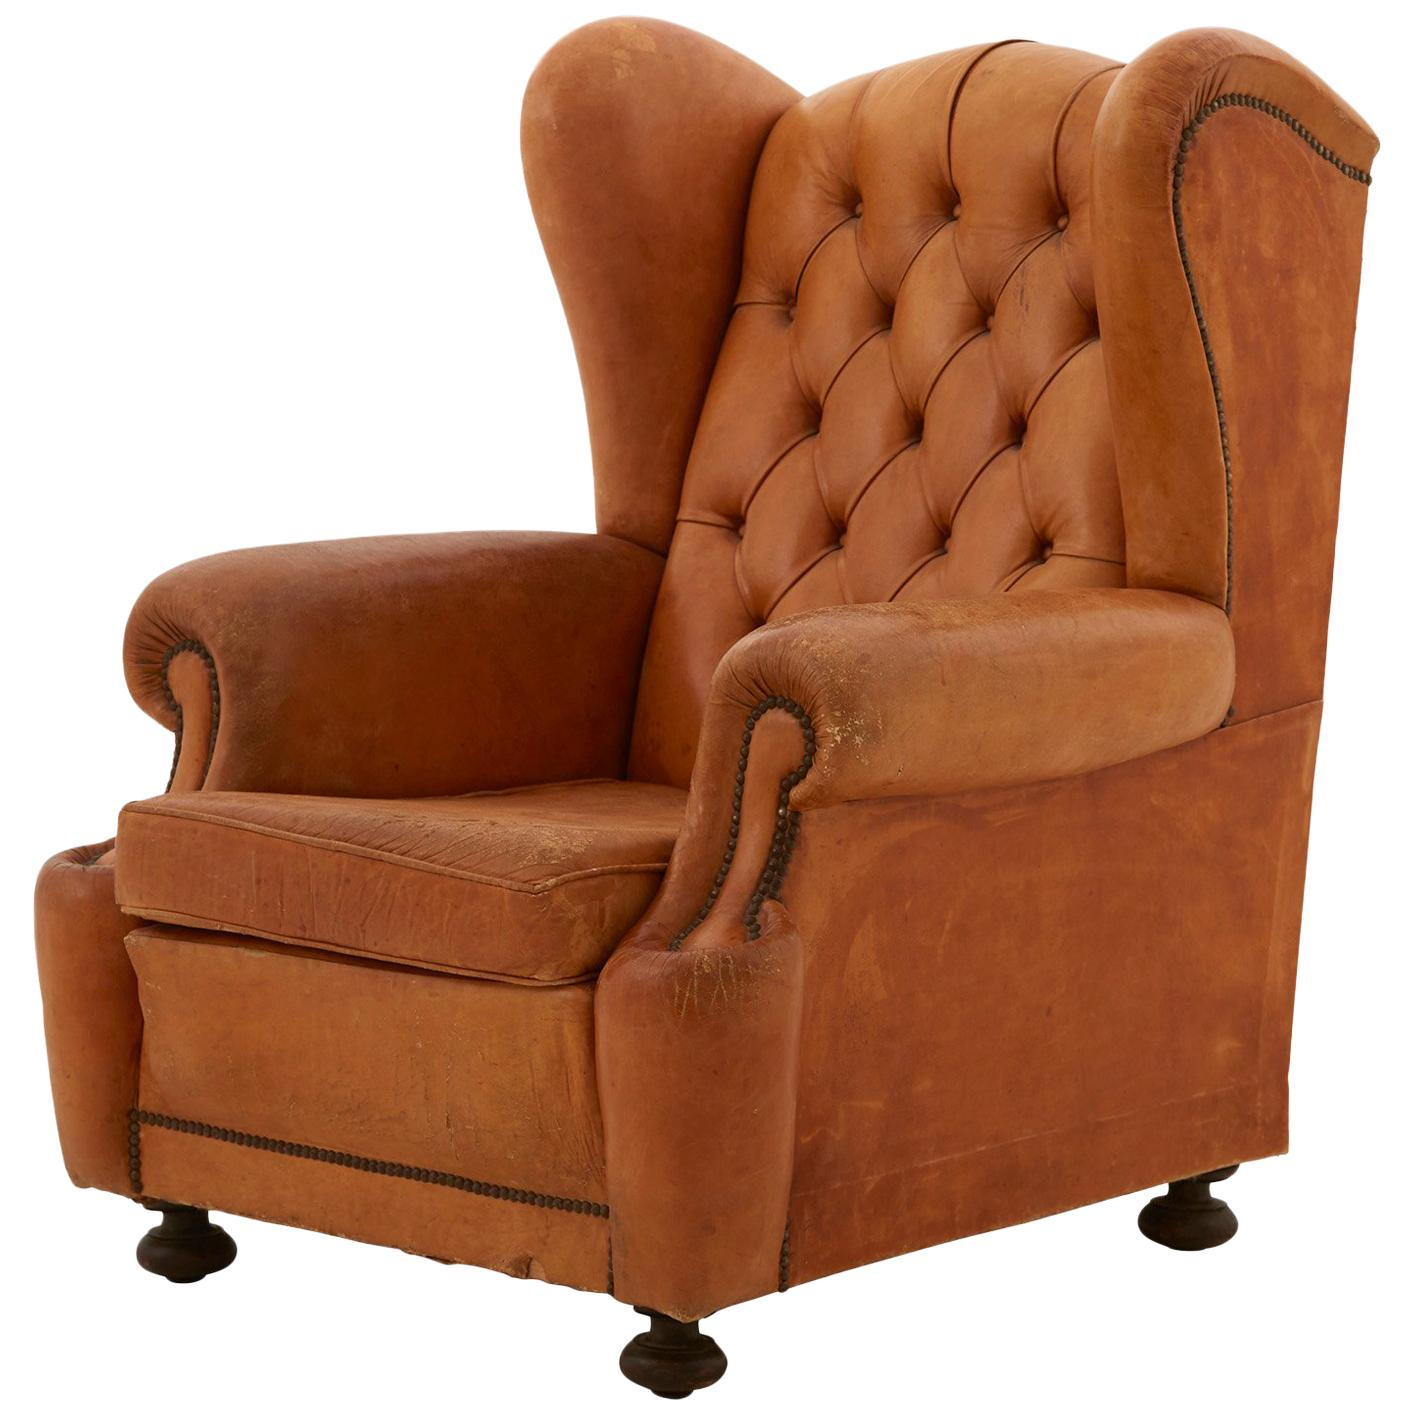 Brown Leather Wingback Chair Spanish Tufted Leather Wingback Chair